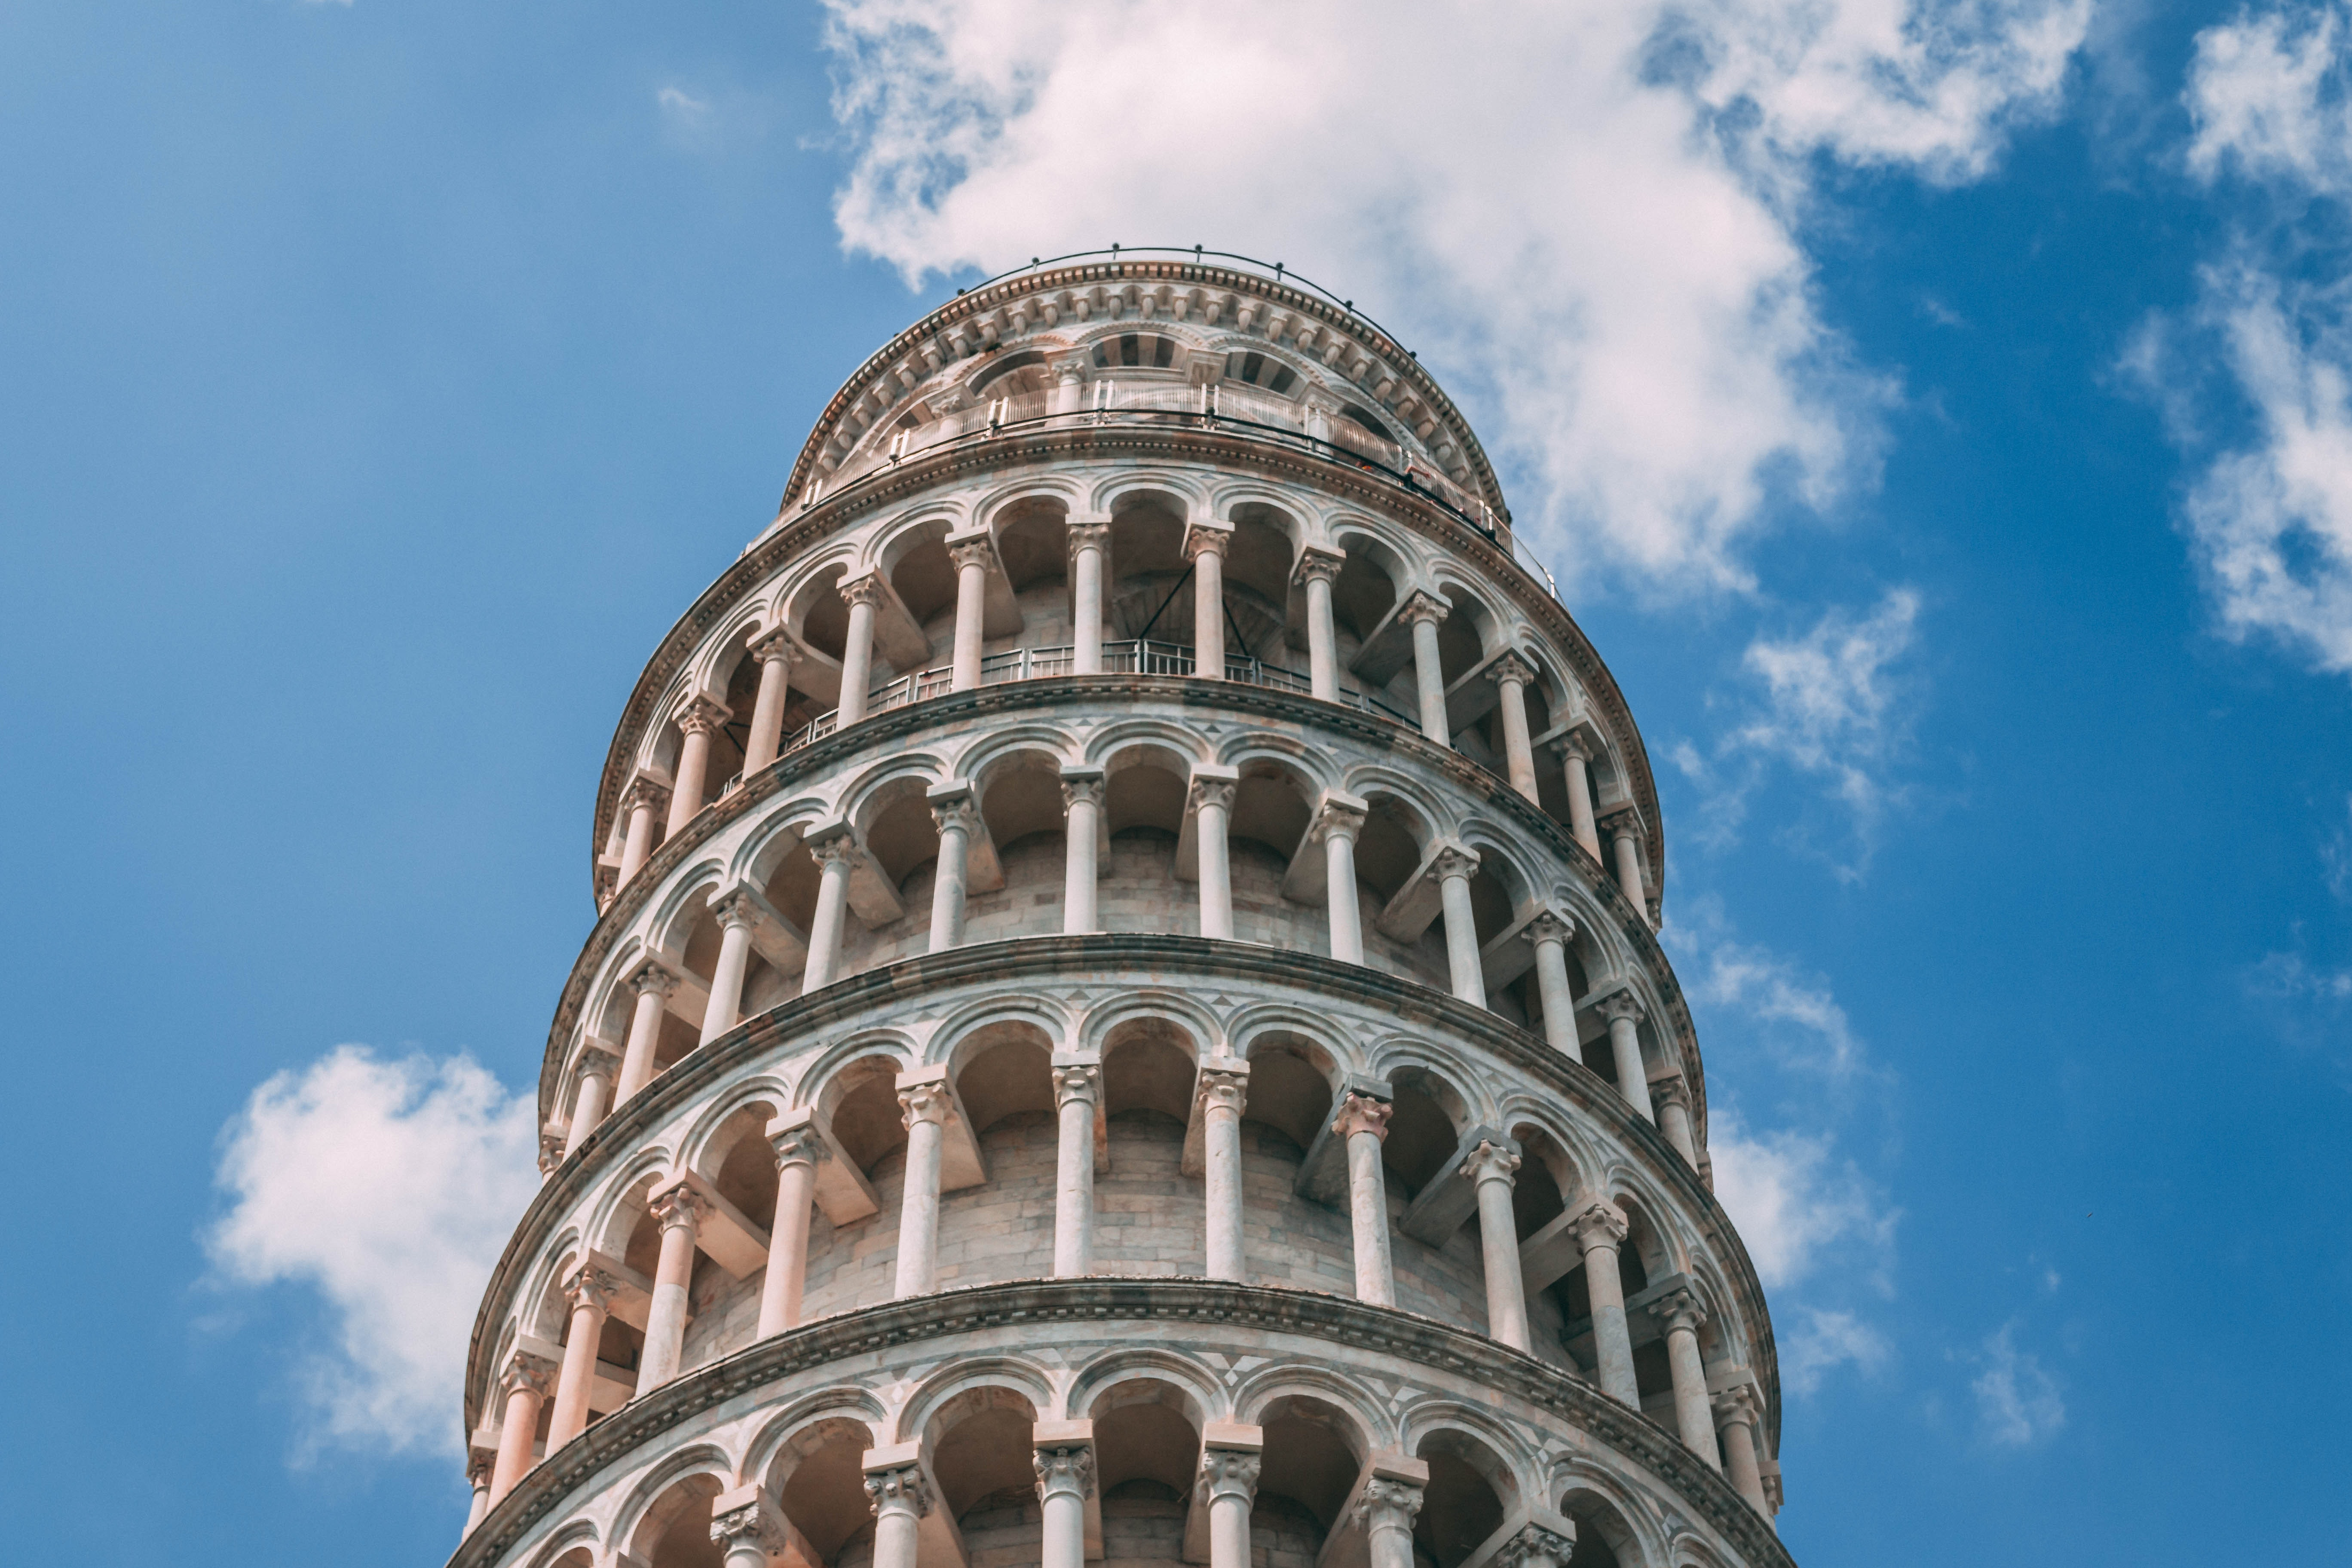 View looking up to the Leaning Tower of Pisa.